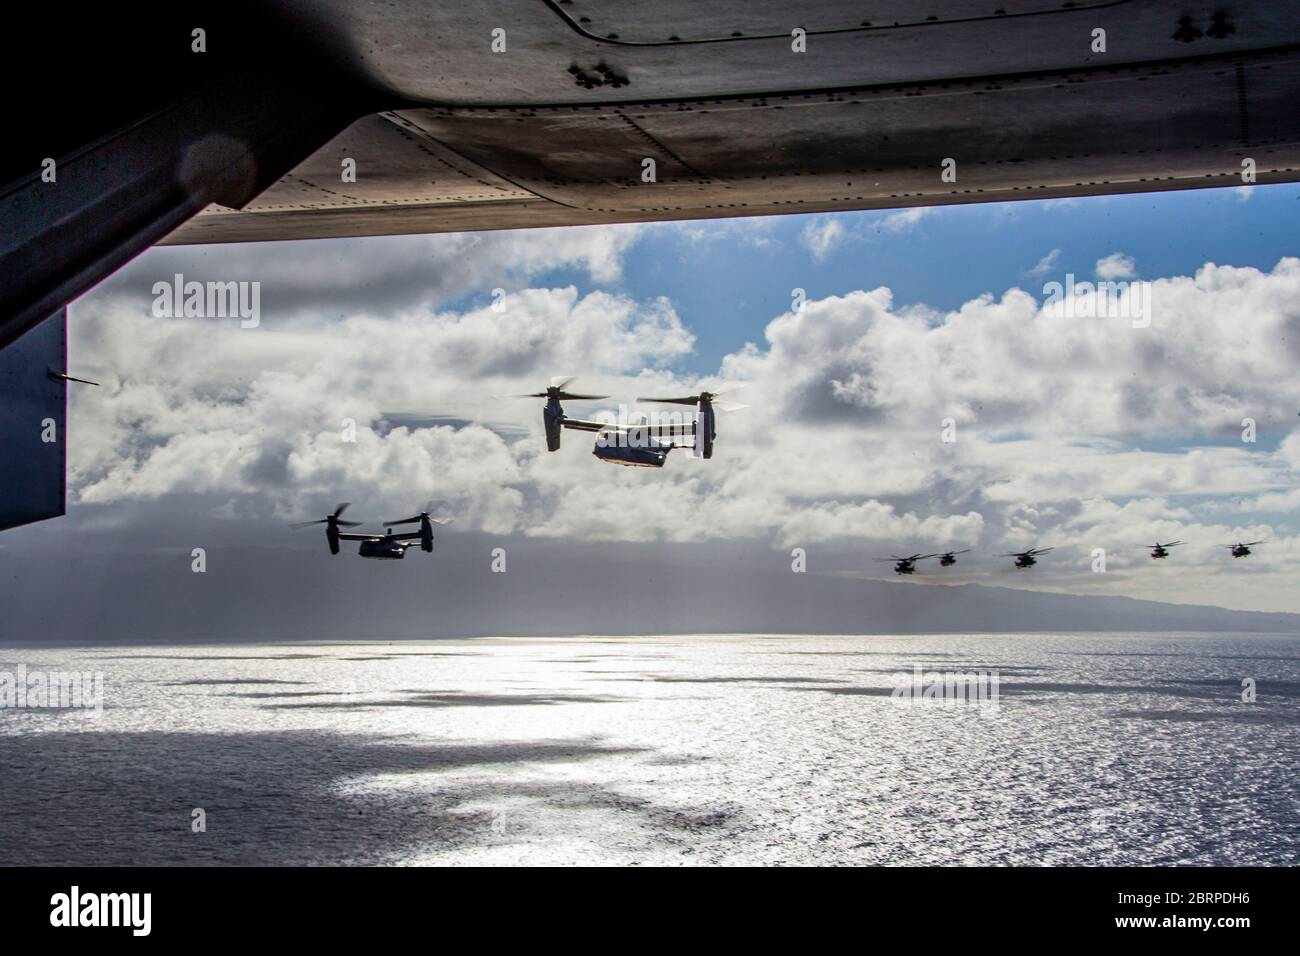 U.S. Marines with Marine Aircraft Group 24 fly over the island of Oahu during an integrated training mission, Marine Corps Air Station Kaneohe Bay, Marine Corps Base Hawaii, May 19, 2020. Utilizing three separate flying platforms, MAG-24 successfully launched seven CH-53E Super Stallions, seven MV-22B Ospreys, and two UH-1Y Venoms while hitting critical training objectives to produce maximum readiness. (U.S. Marine Corps photo by Lance Cpl. Jacob Wilson) Stock Photo